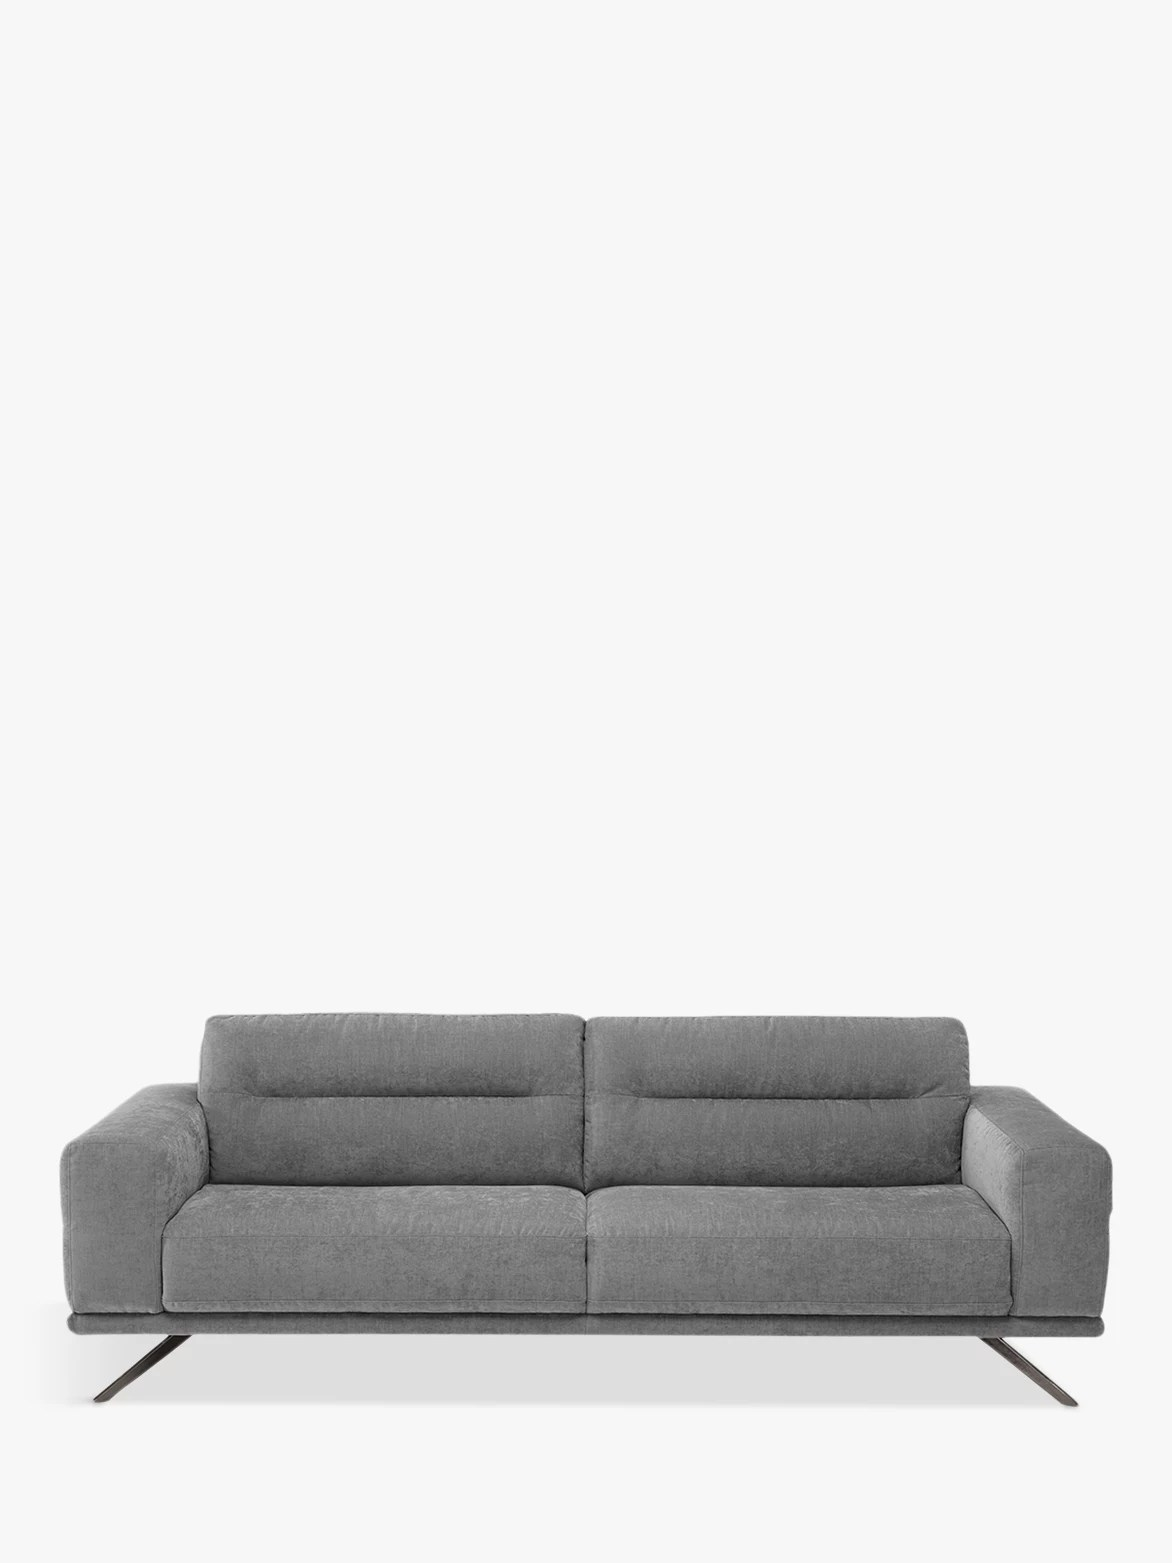 3 seater fabric sofa adrian pearsall value natuzzi timido 009 large chrome leg at john buynatuzzi mistral agave online